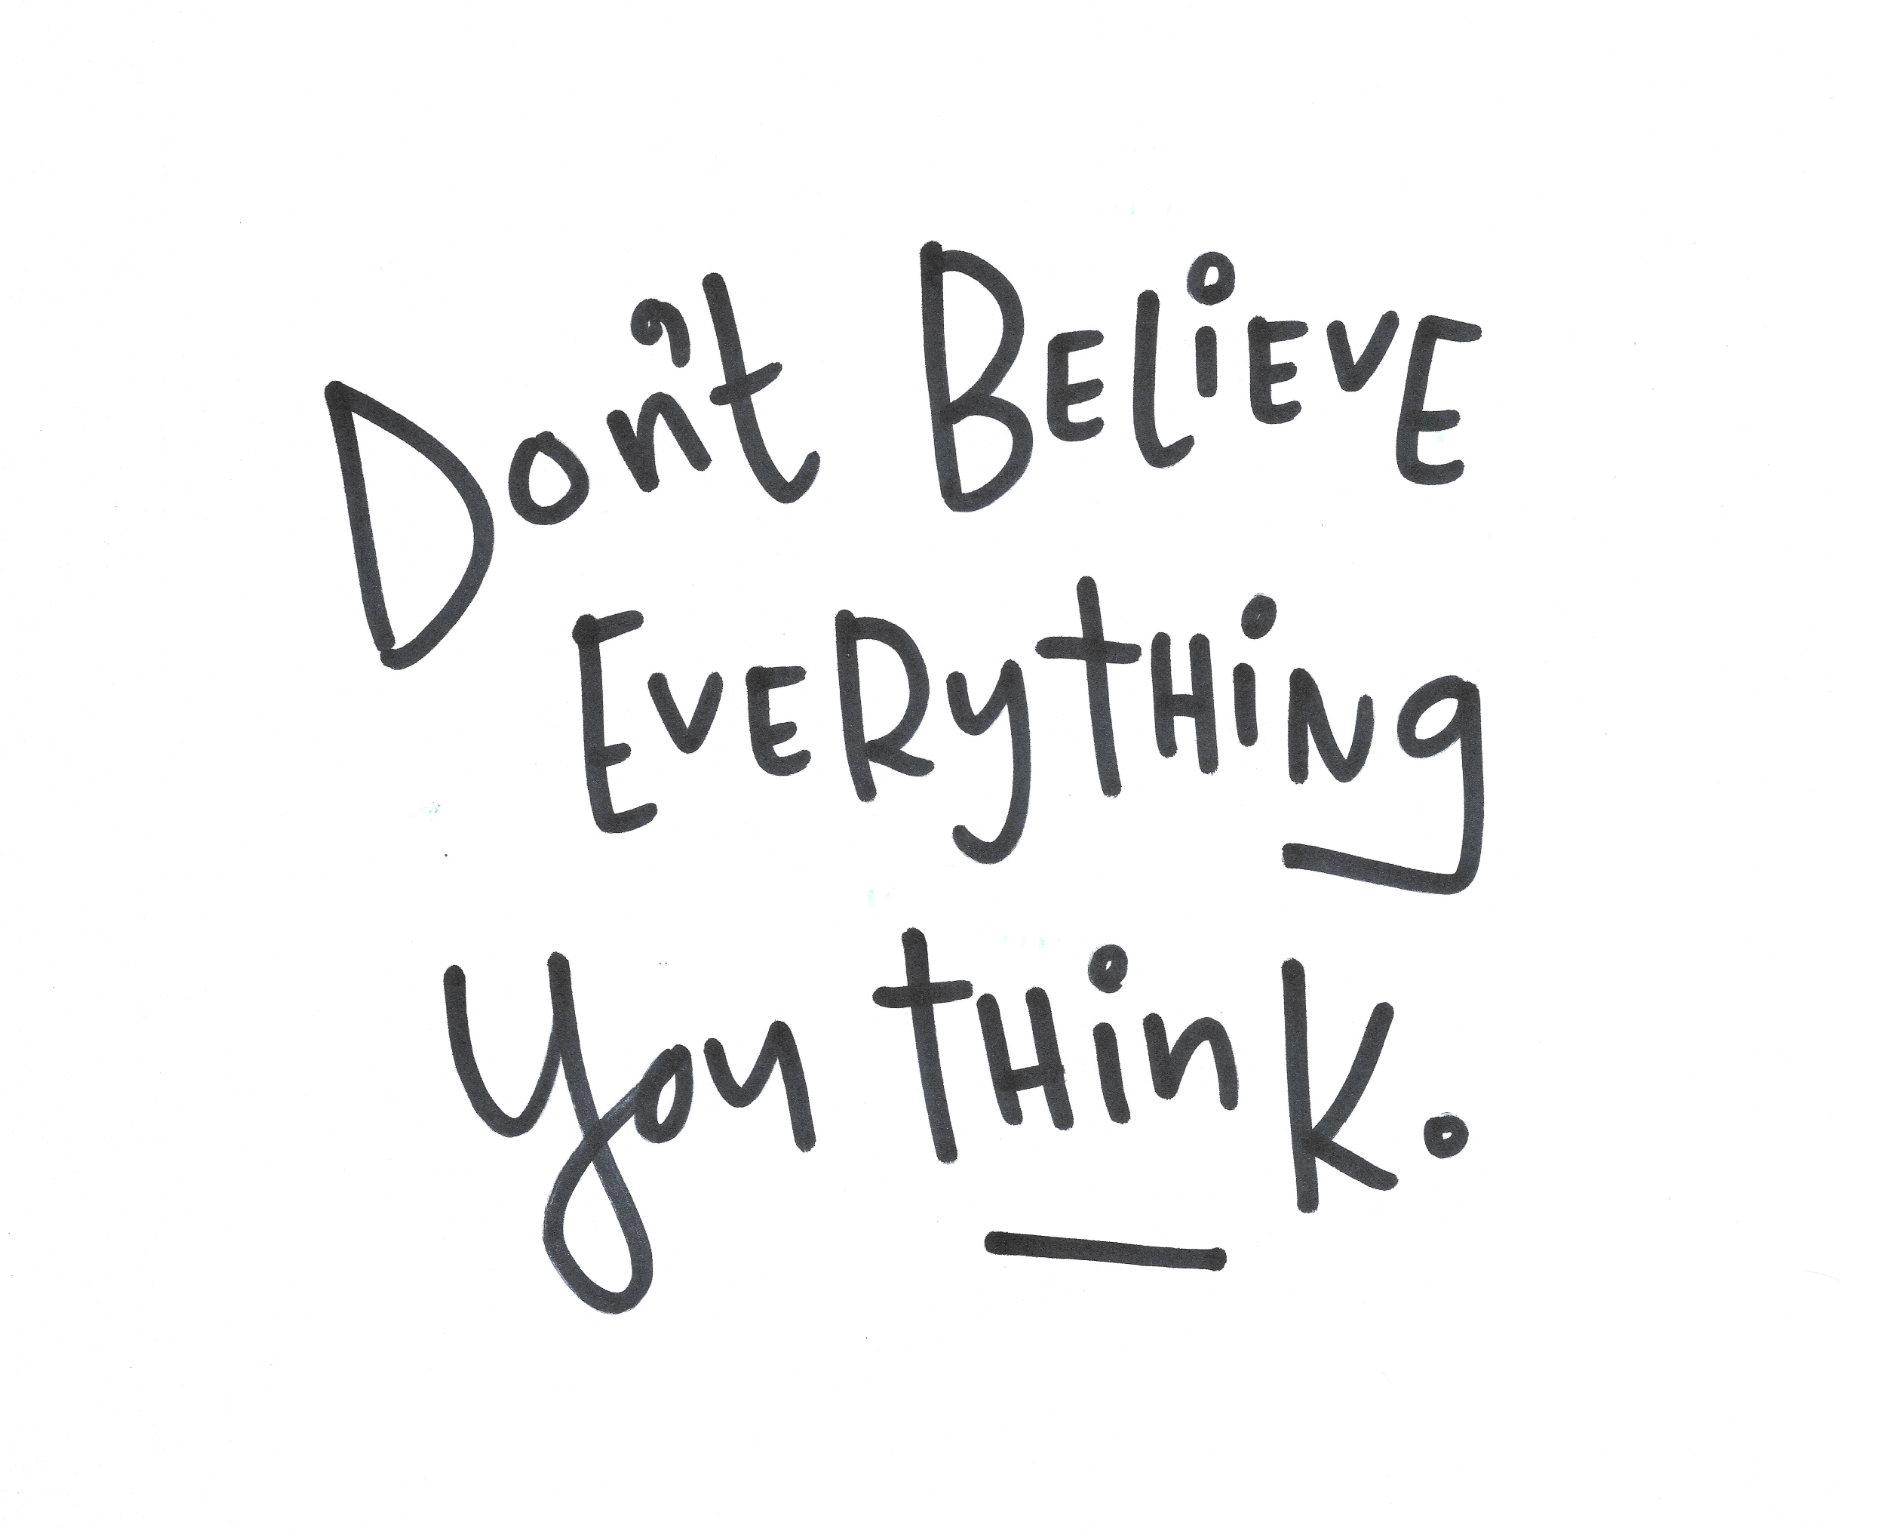 believe_think@2x.png